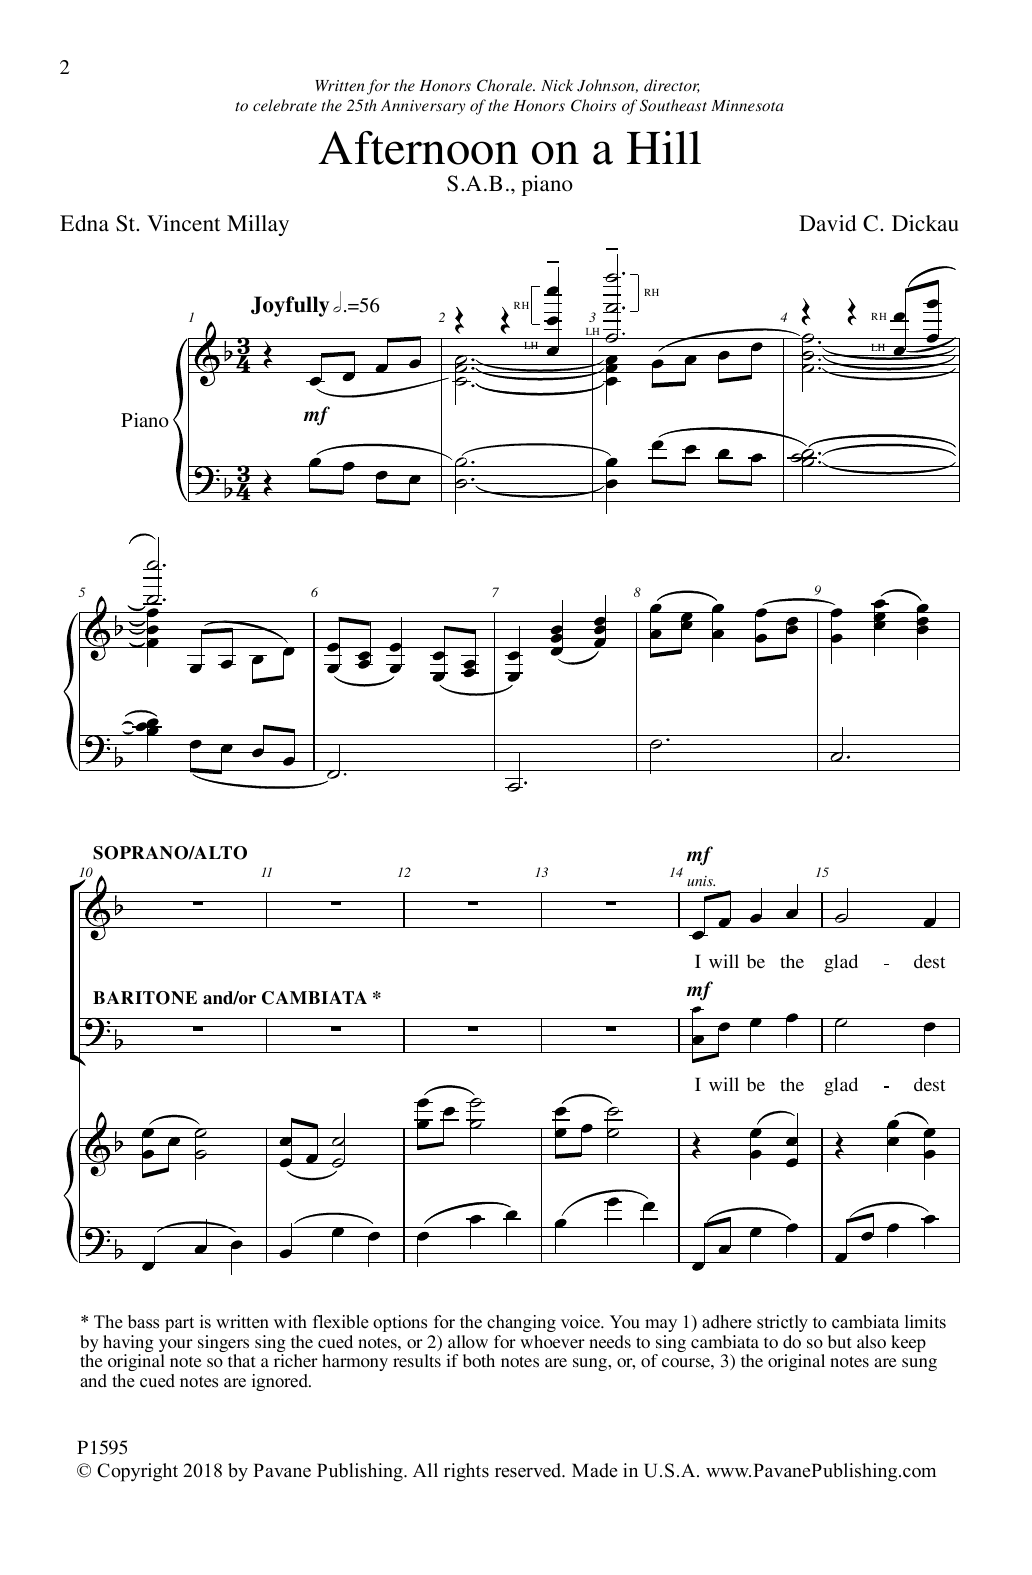 David Dickau Afternoon On A Hill sheet music notes and chords. Download Printable PDF.